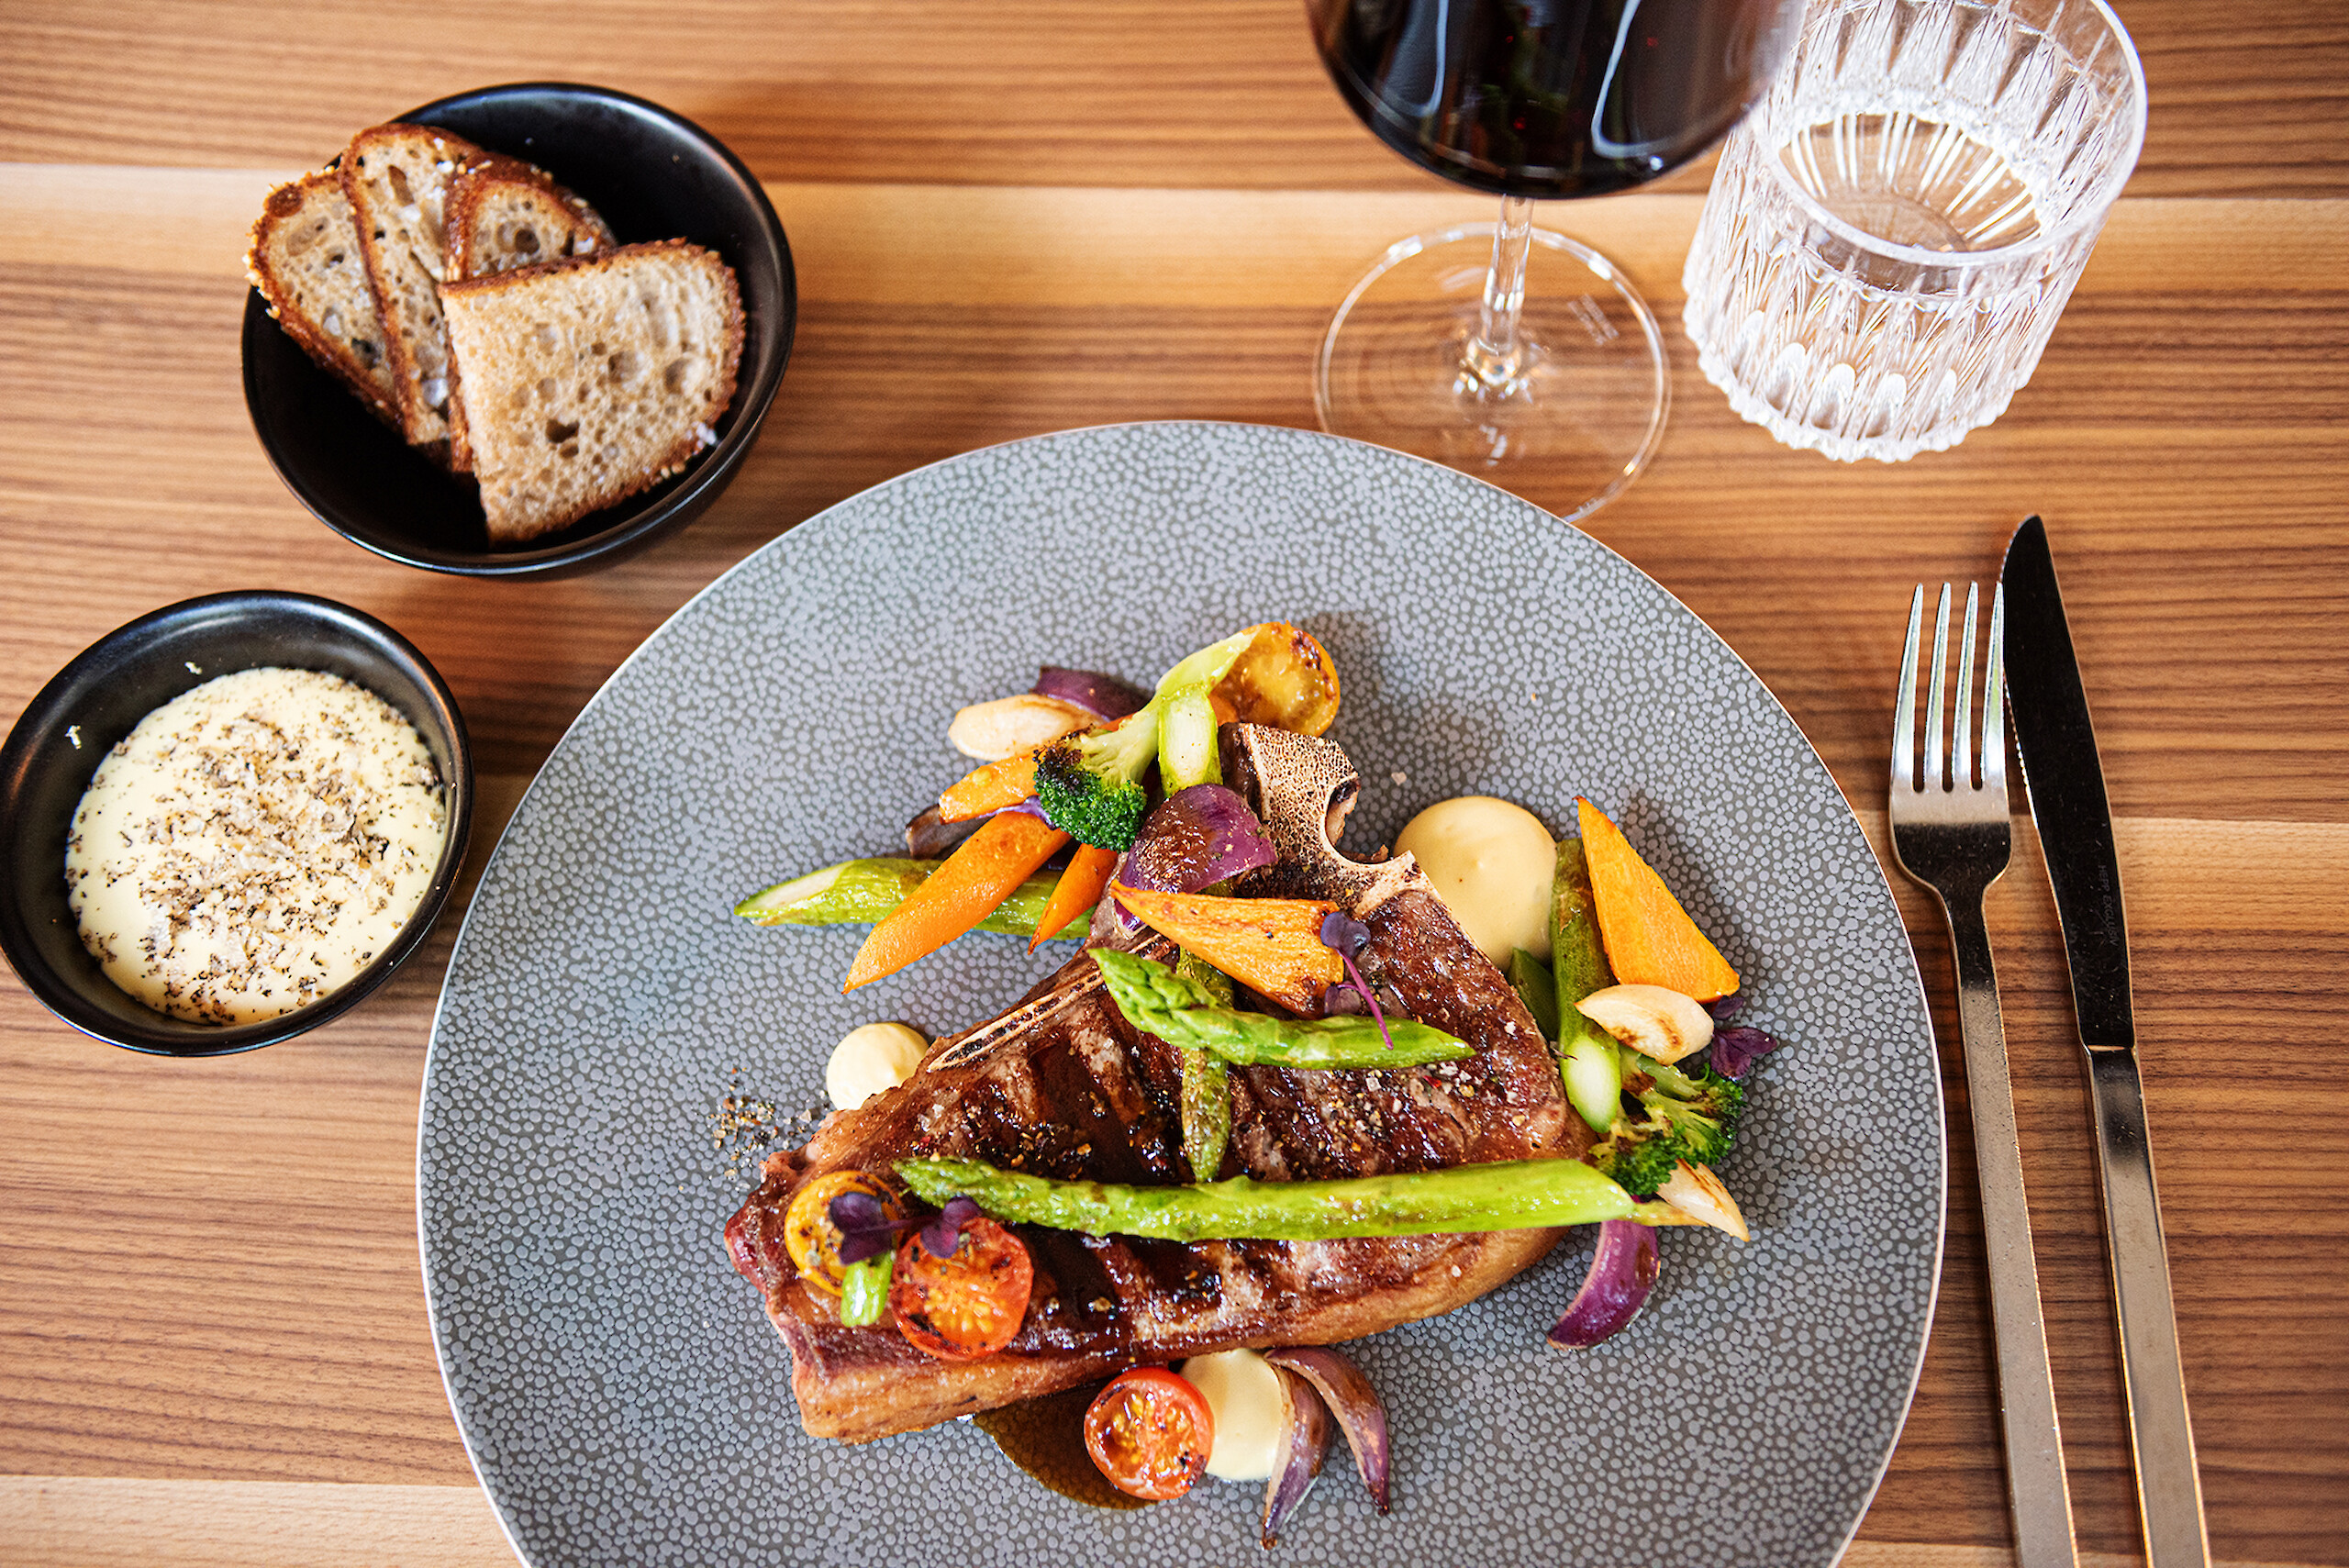 A freshly prepared Côte de Boeuf with vegetable garnish and delicious red wine